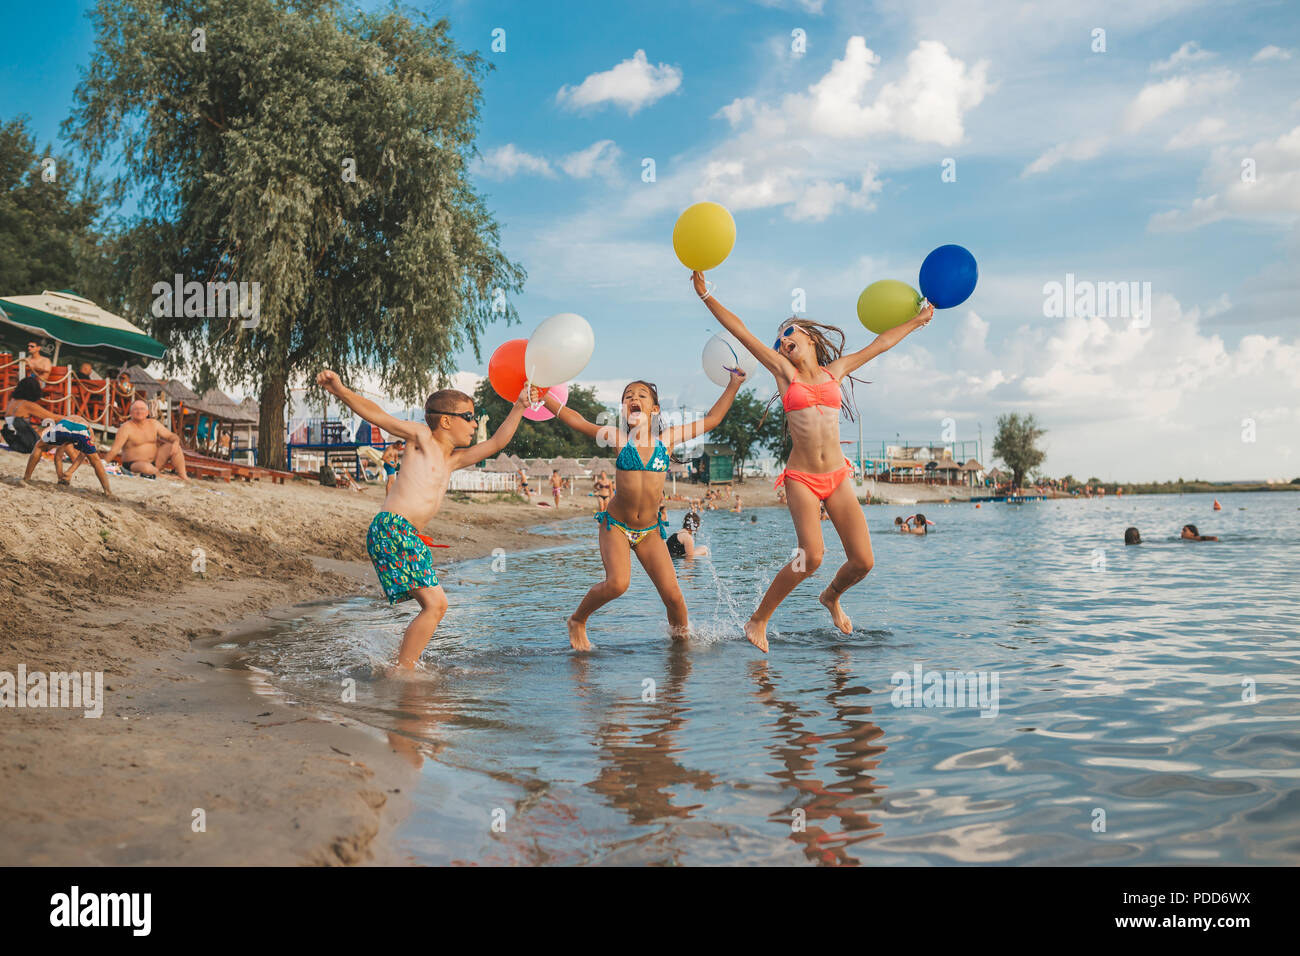 Happy children playing with balloons in the sea. Kids having fun outdoors. Summer vacation and healthy lifestyle concept - Stock Image